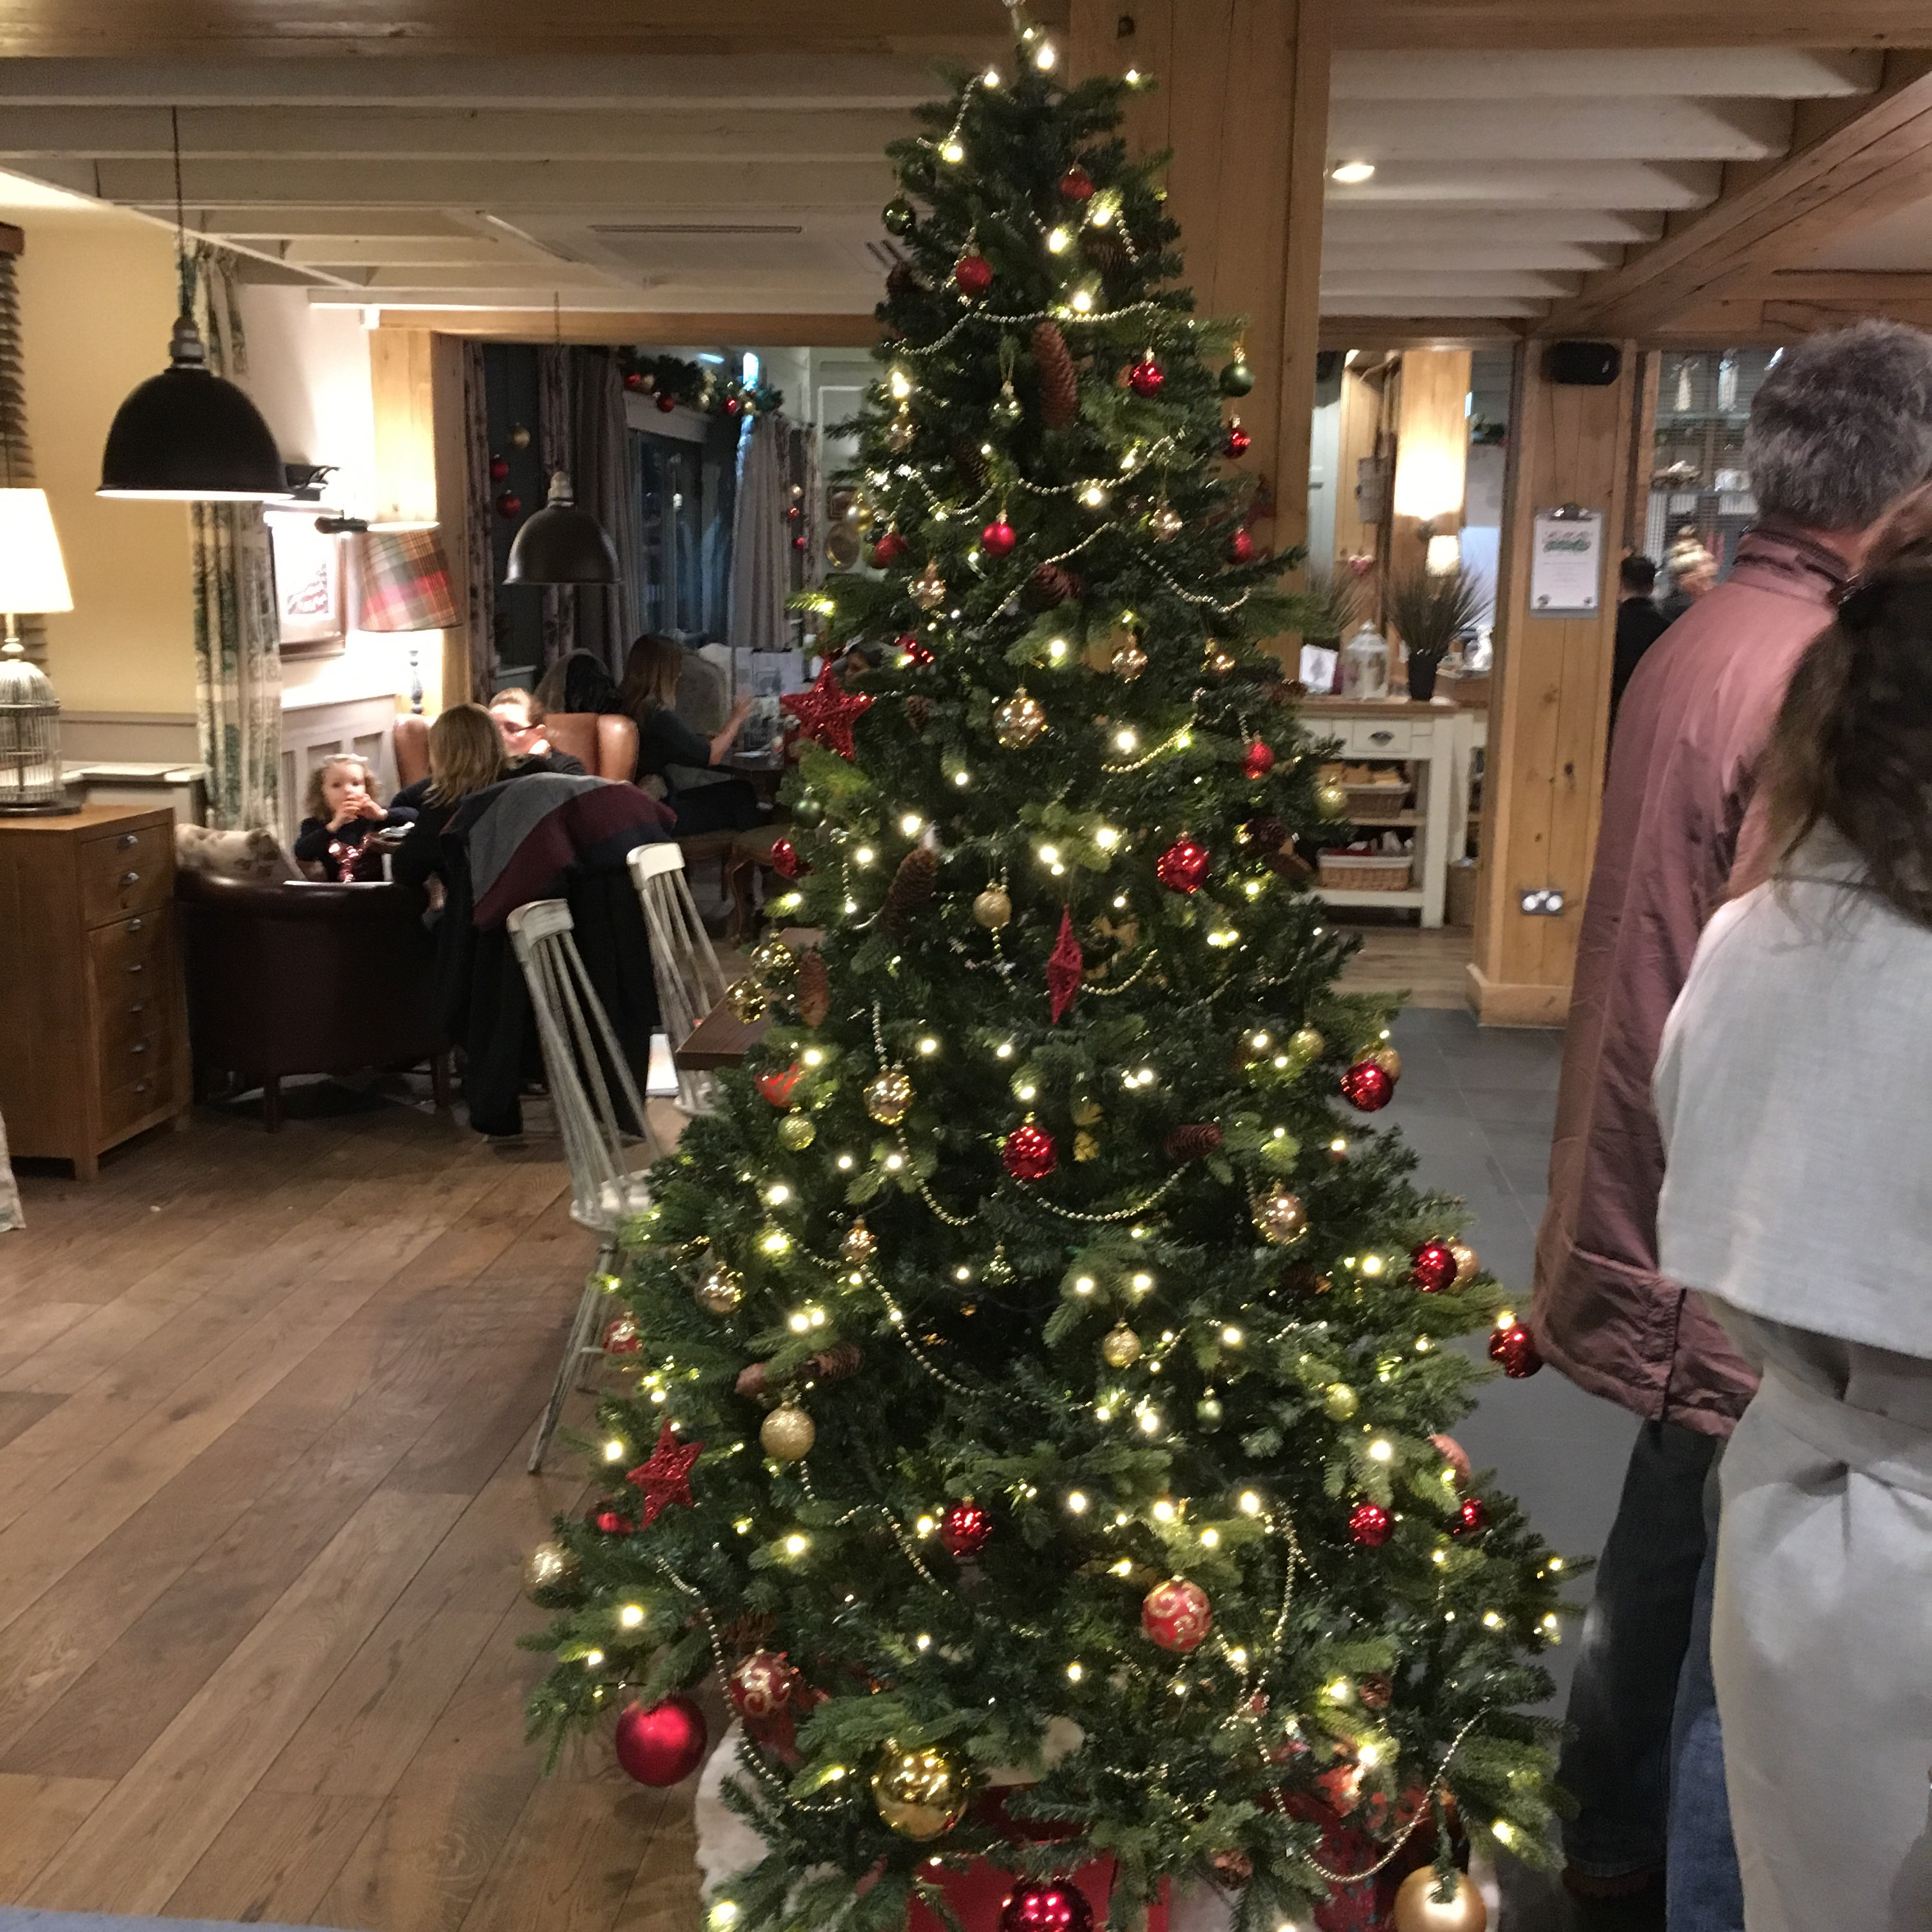 Christmas in full swing at The Prince George